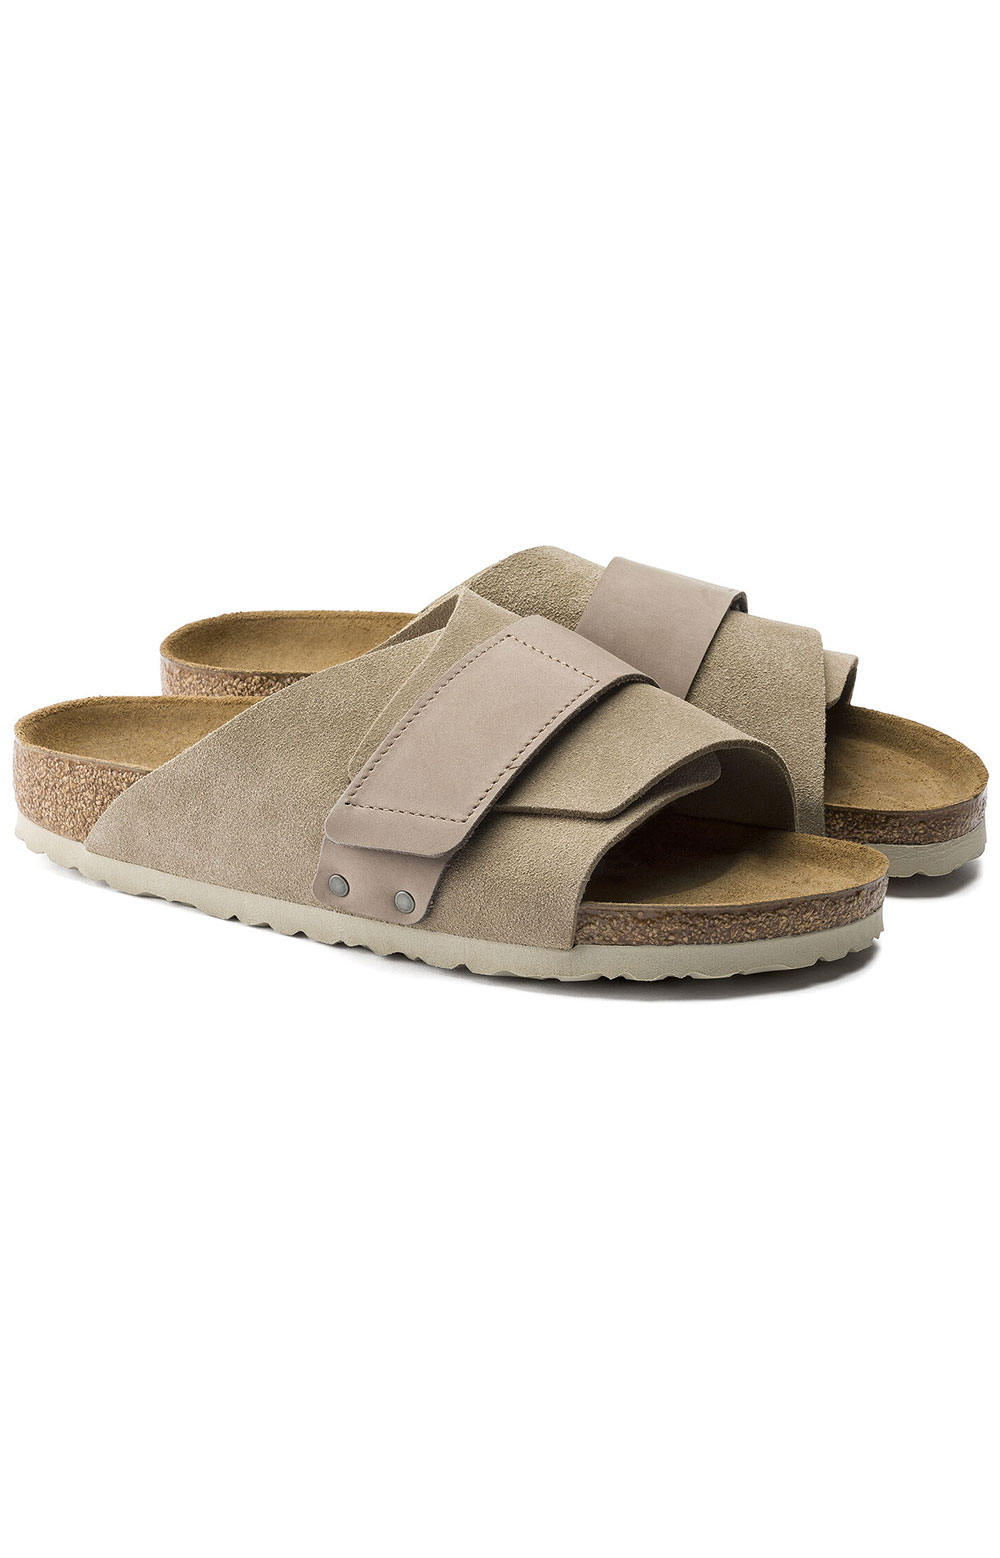 (1015573) Kyoto Sandals - Taupe